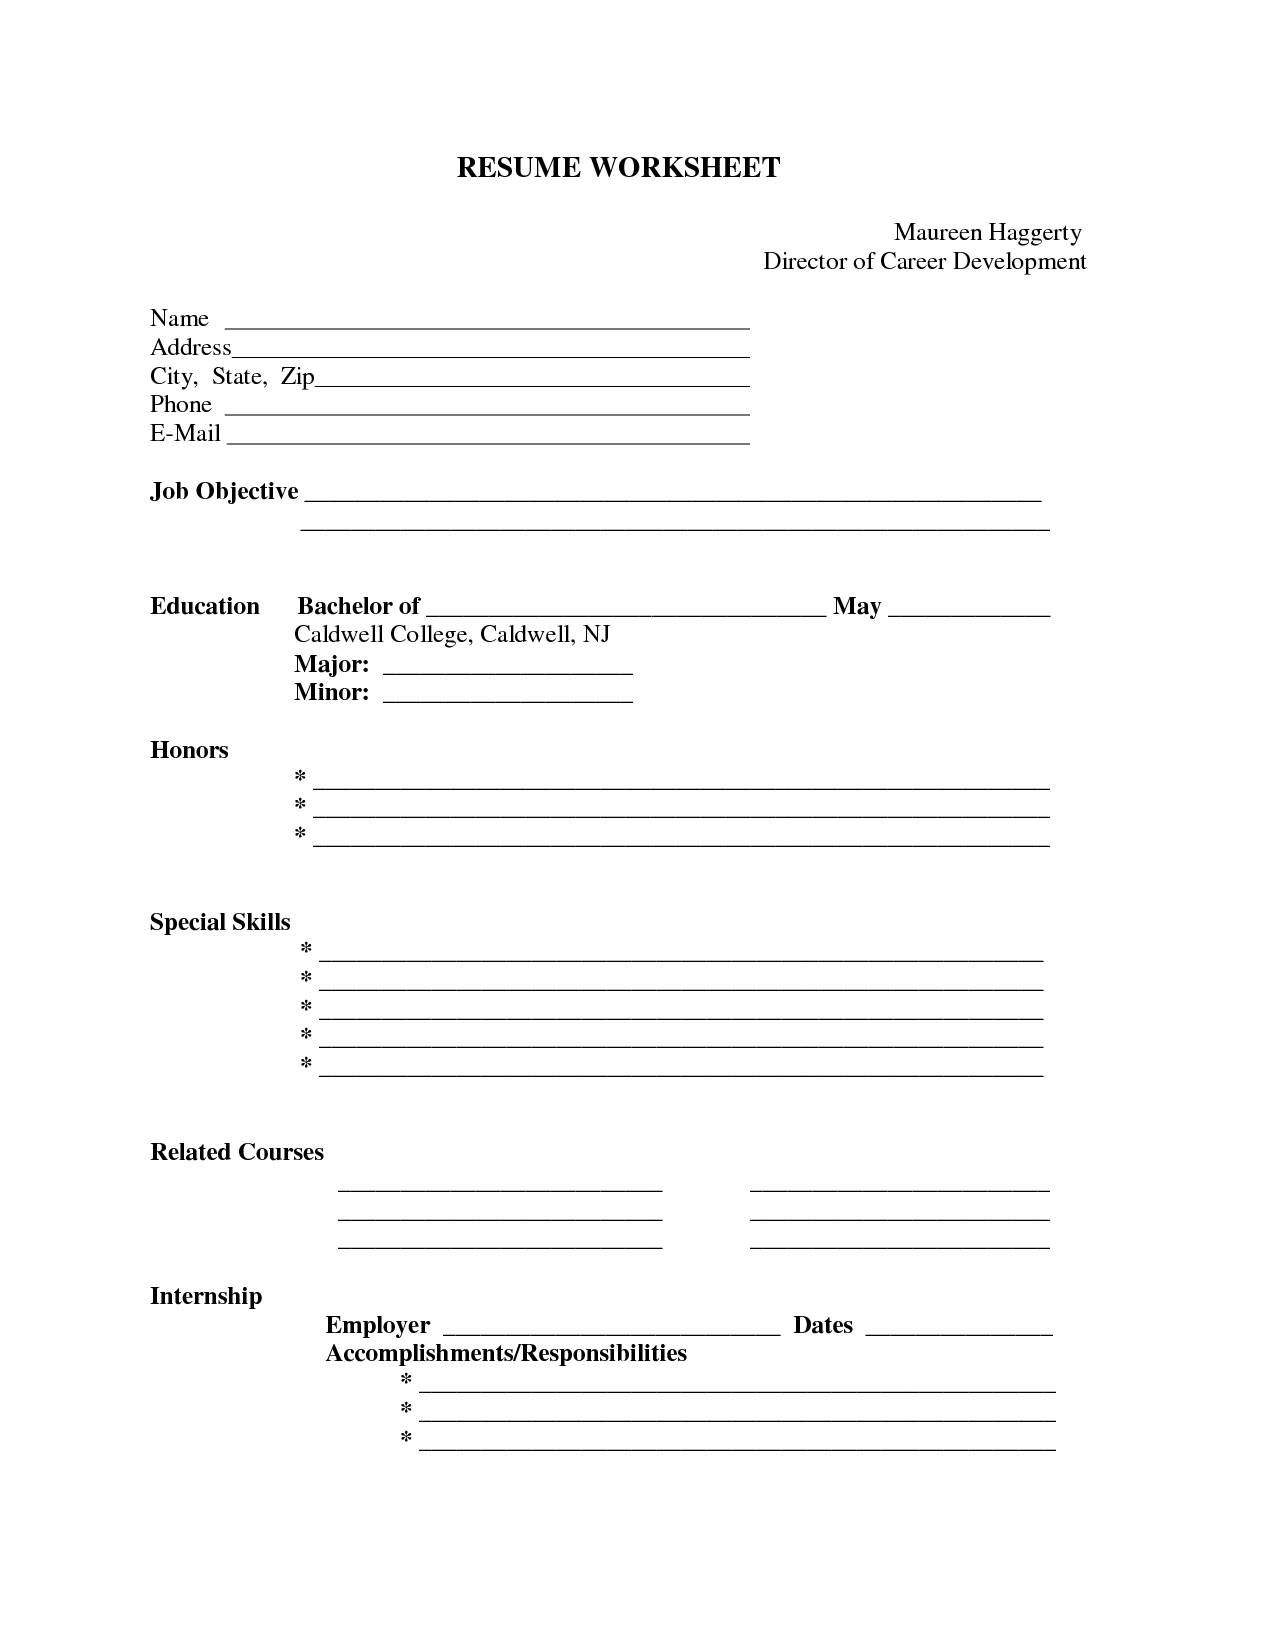 free printable blank resume forms httpwwwresumecareerinfofree printable blank resume forms 12